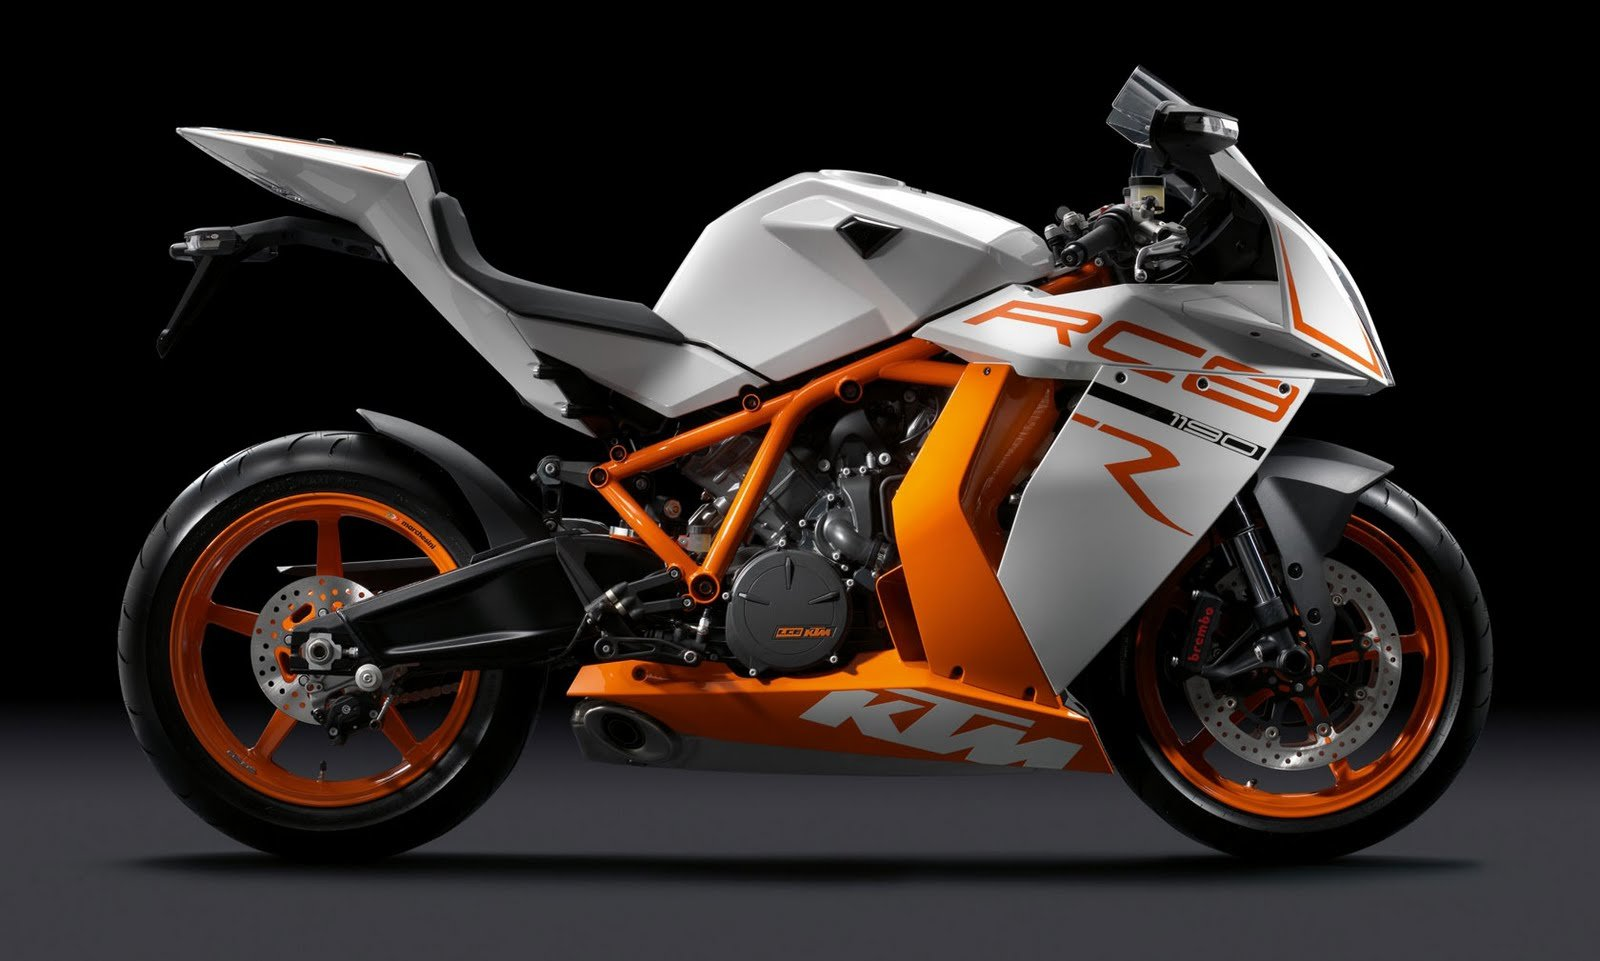 Latest Ktm 1190 Rc8R Wallpapers Bikes Cars Wallpapers Free Download